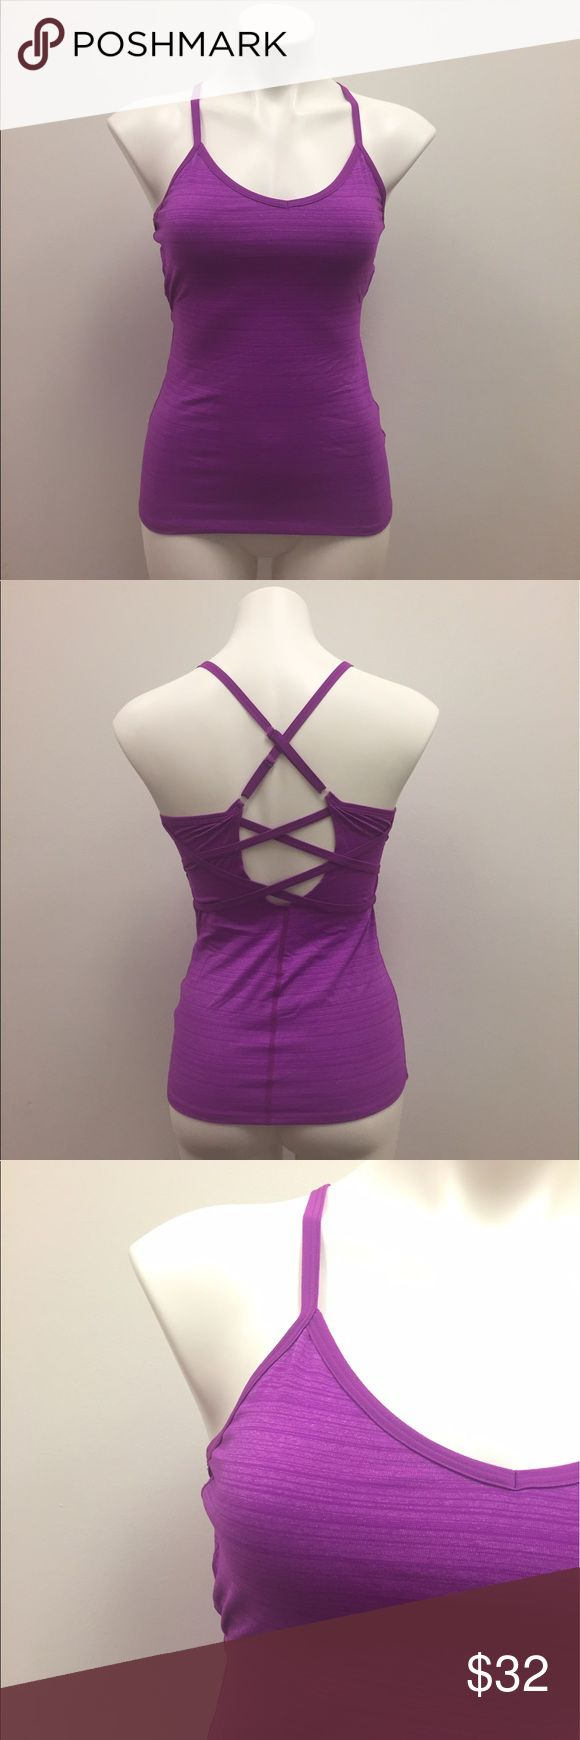 Beyond Yoga Bright Purple Workout Tank Gorgeous bright purple workout tank from Beyond Yoga in a size medium. It has a subtle pattern to it and is in very good condition with light wear! It has a chic/trendy back criss cross detailing sure to make a statement in your workout or when you are out and about on the go! #beyondyoga #purple #athletic #athleisure #workout Beyond Yoga Tops Tank Tops